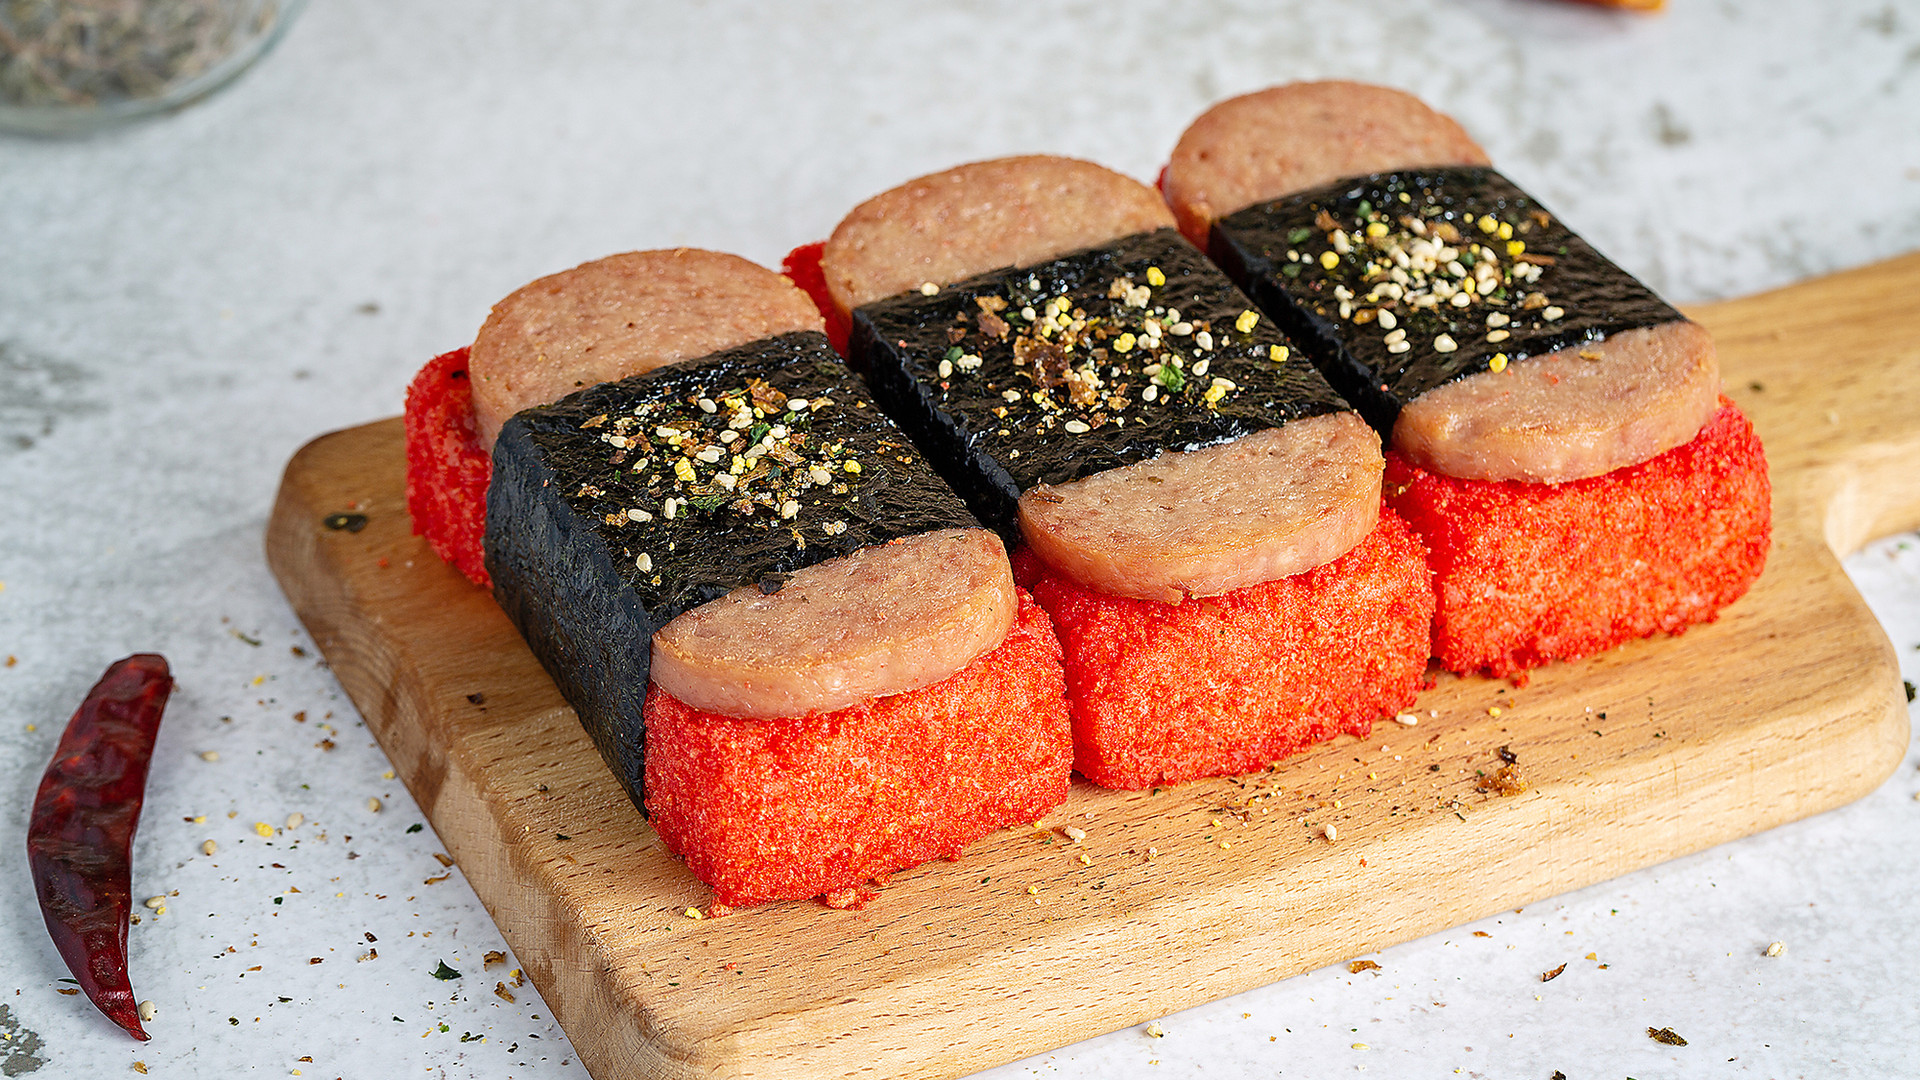 Hot Cheetoh Musubi.jpg